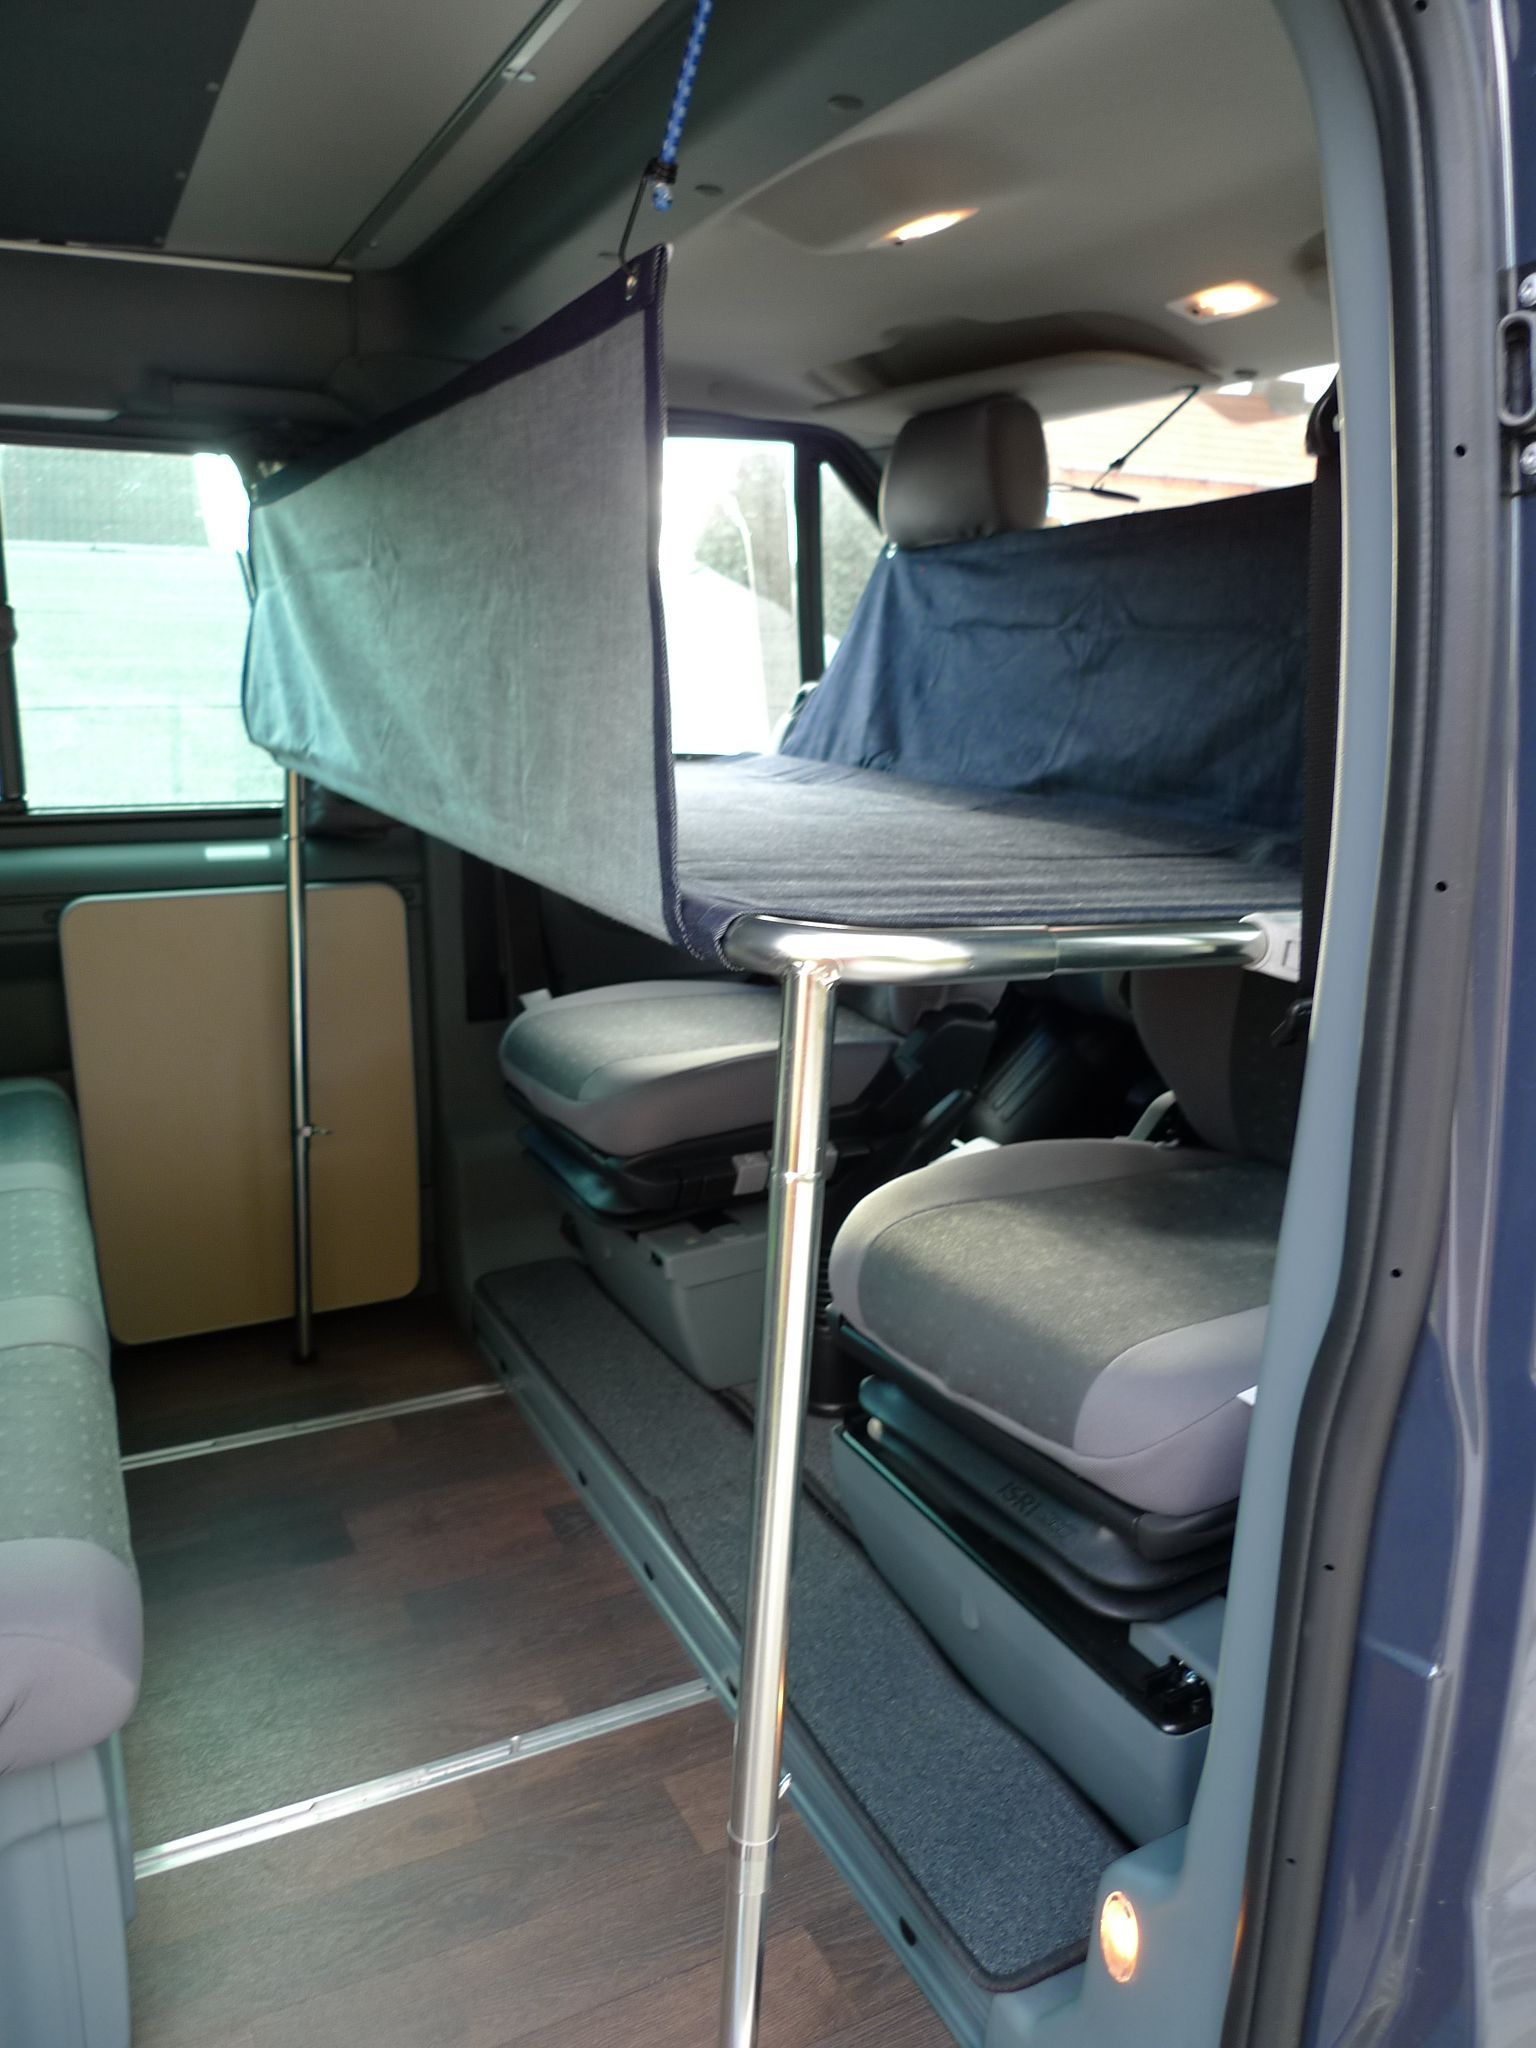 Cot Ford Nugget cab -  Cot driver cabin Ford Nugget at purple bus shop  -